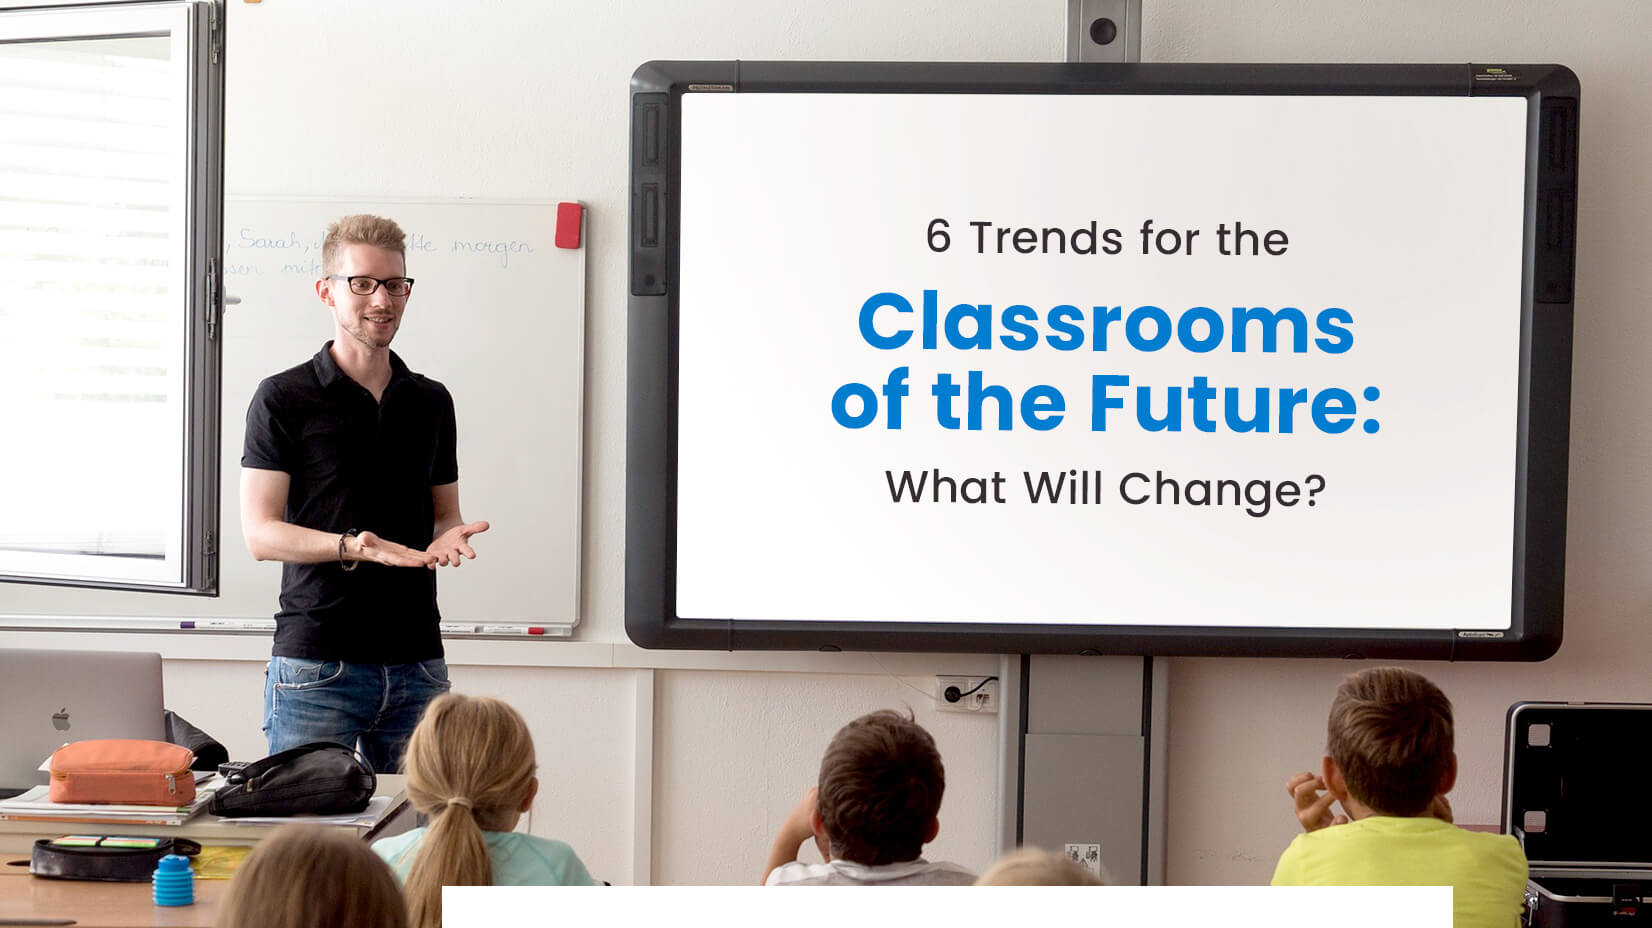 6 Trends for the Classrooms of the Future: What Will Change?